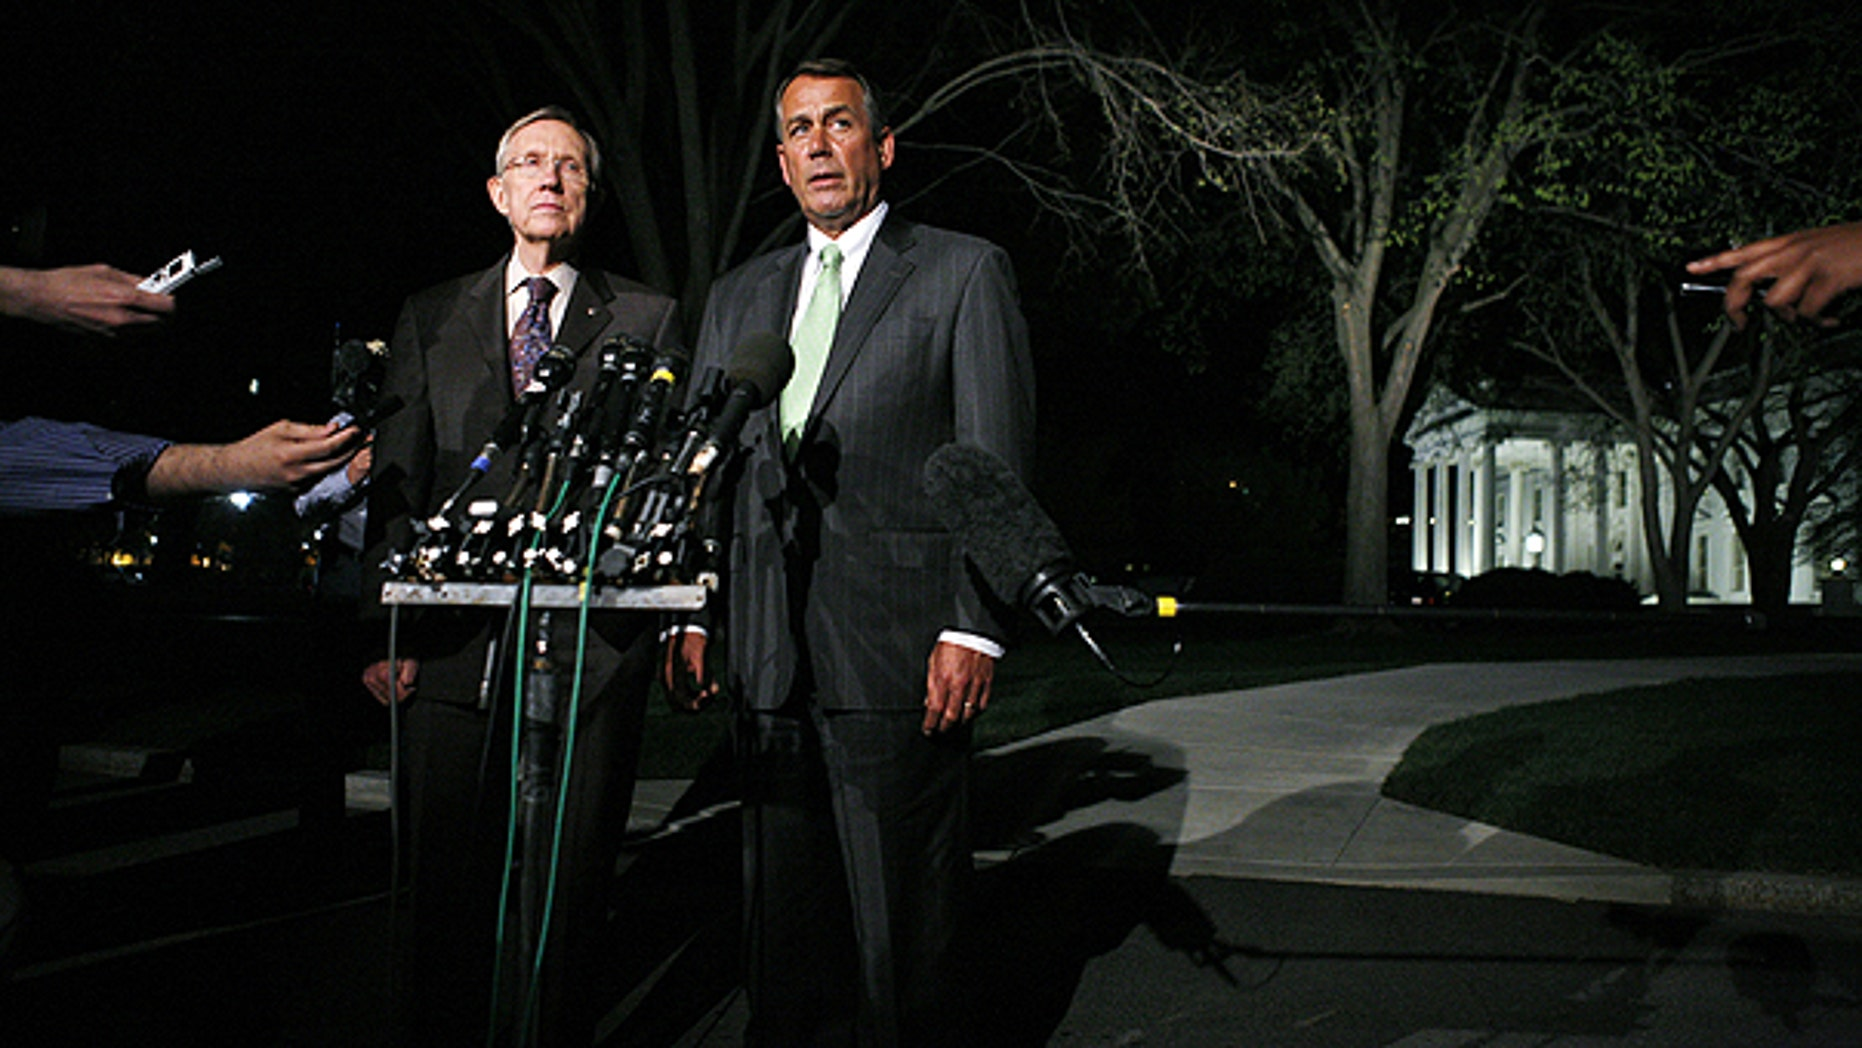 April 6: House Speaker John Boehner, R-Ohio and Senate Majority Leader Harry Reid, D-Nev., speak to reporters after their meeting at the White House in Washington with President Obama regarding the budget and possible government shutdown.